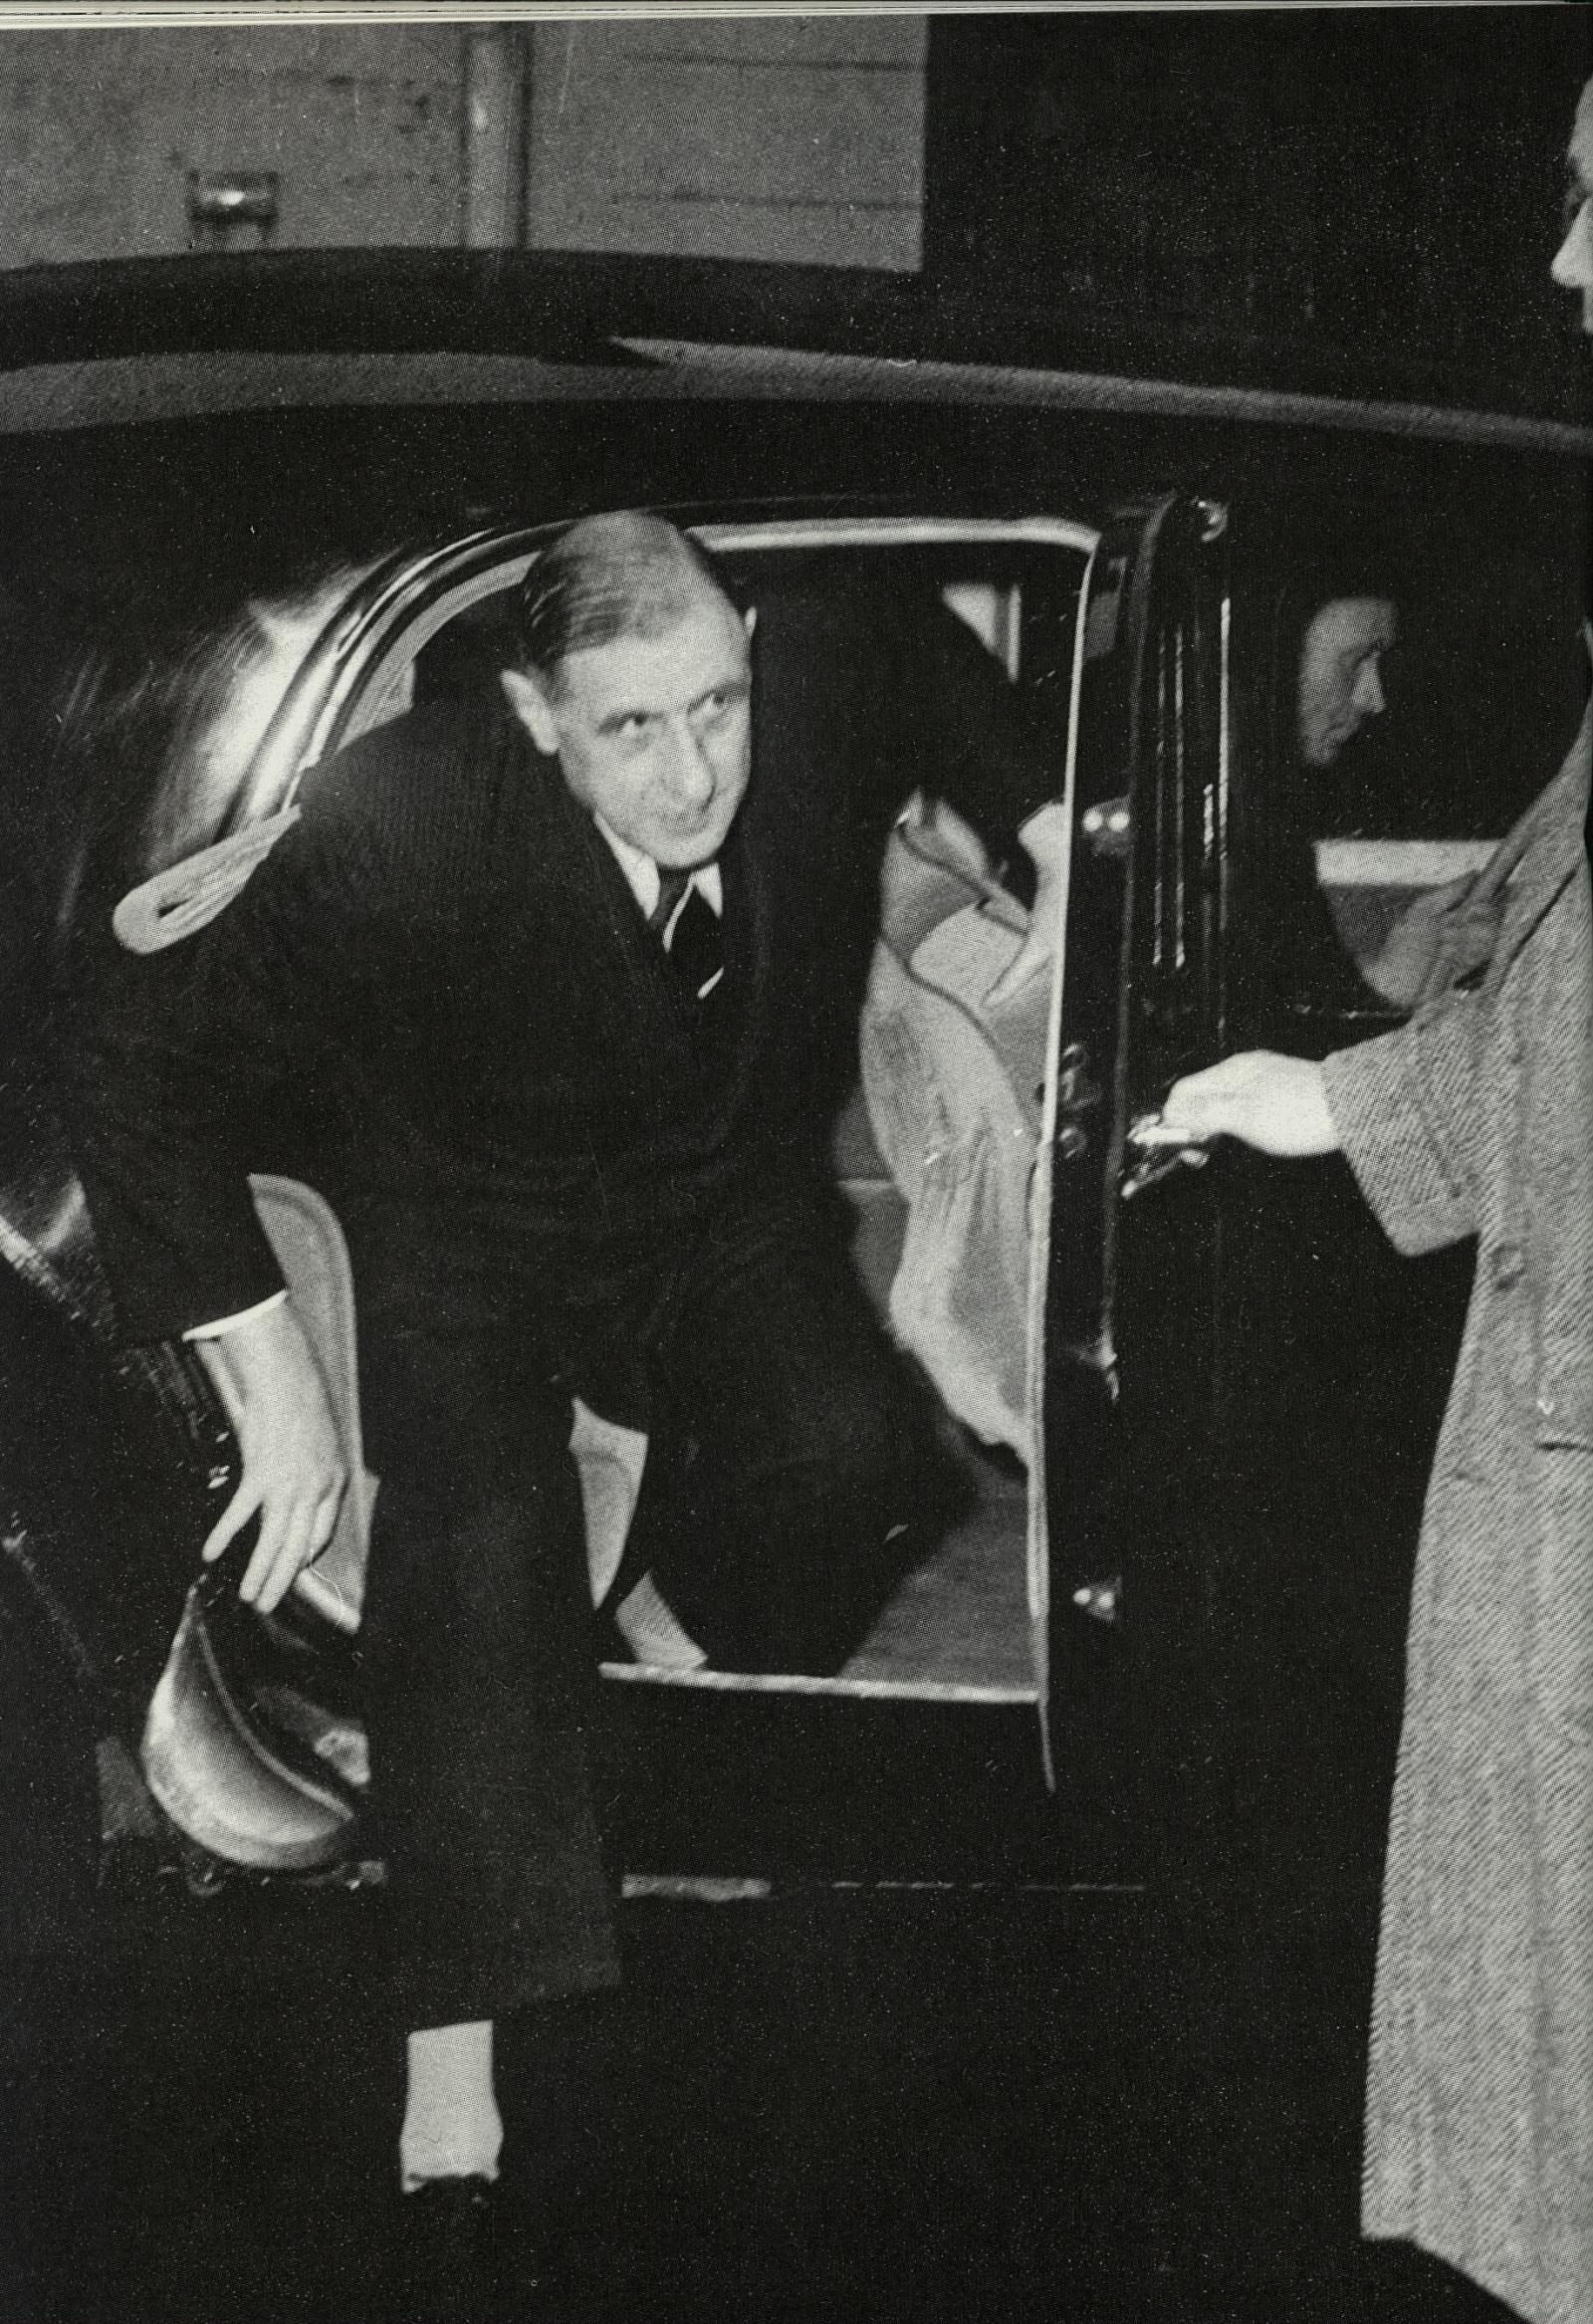 President De Gaulle out of a Citroen Traction Avant